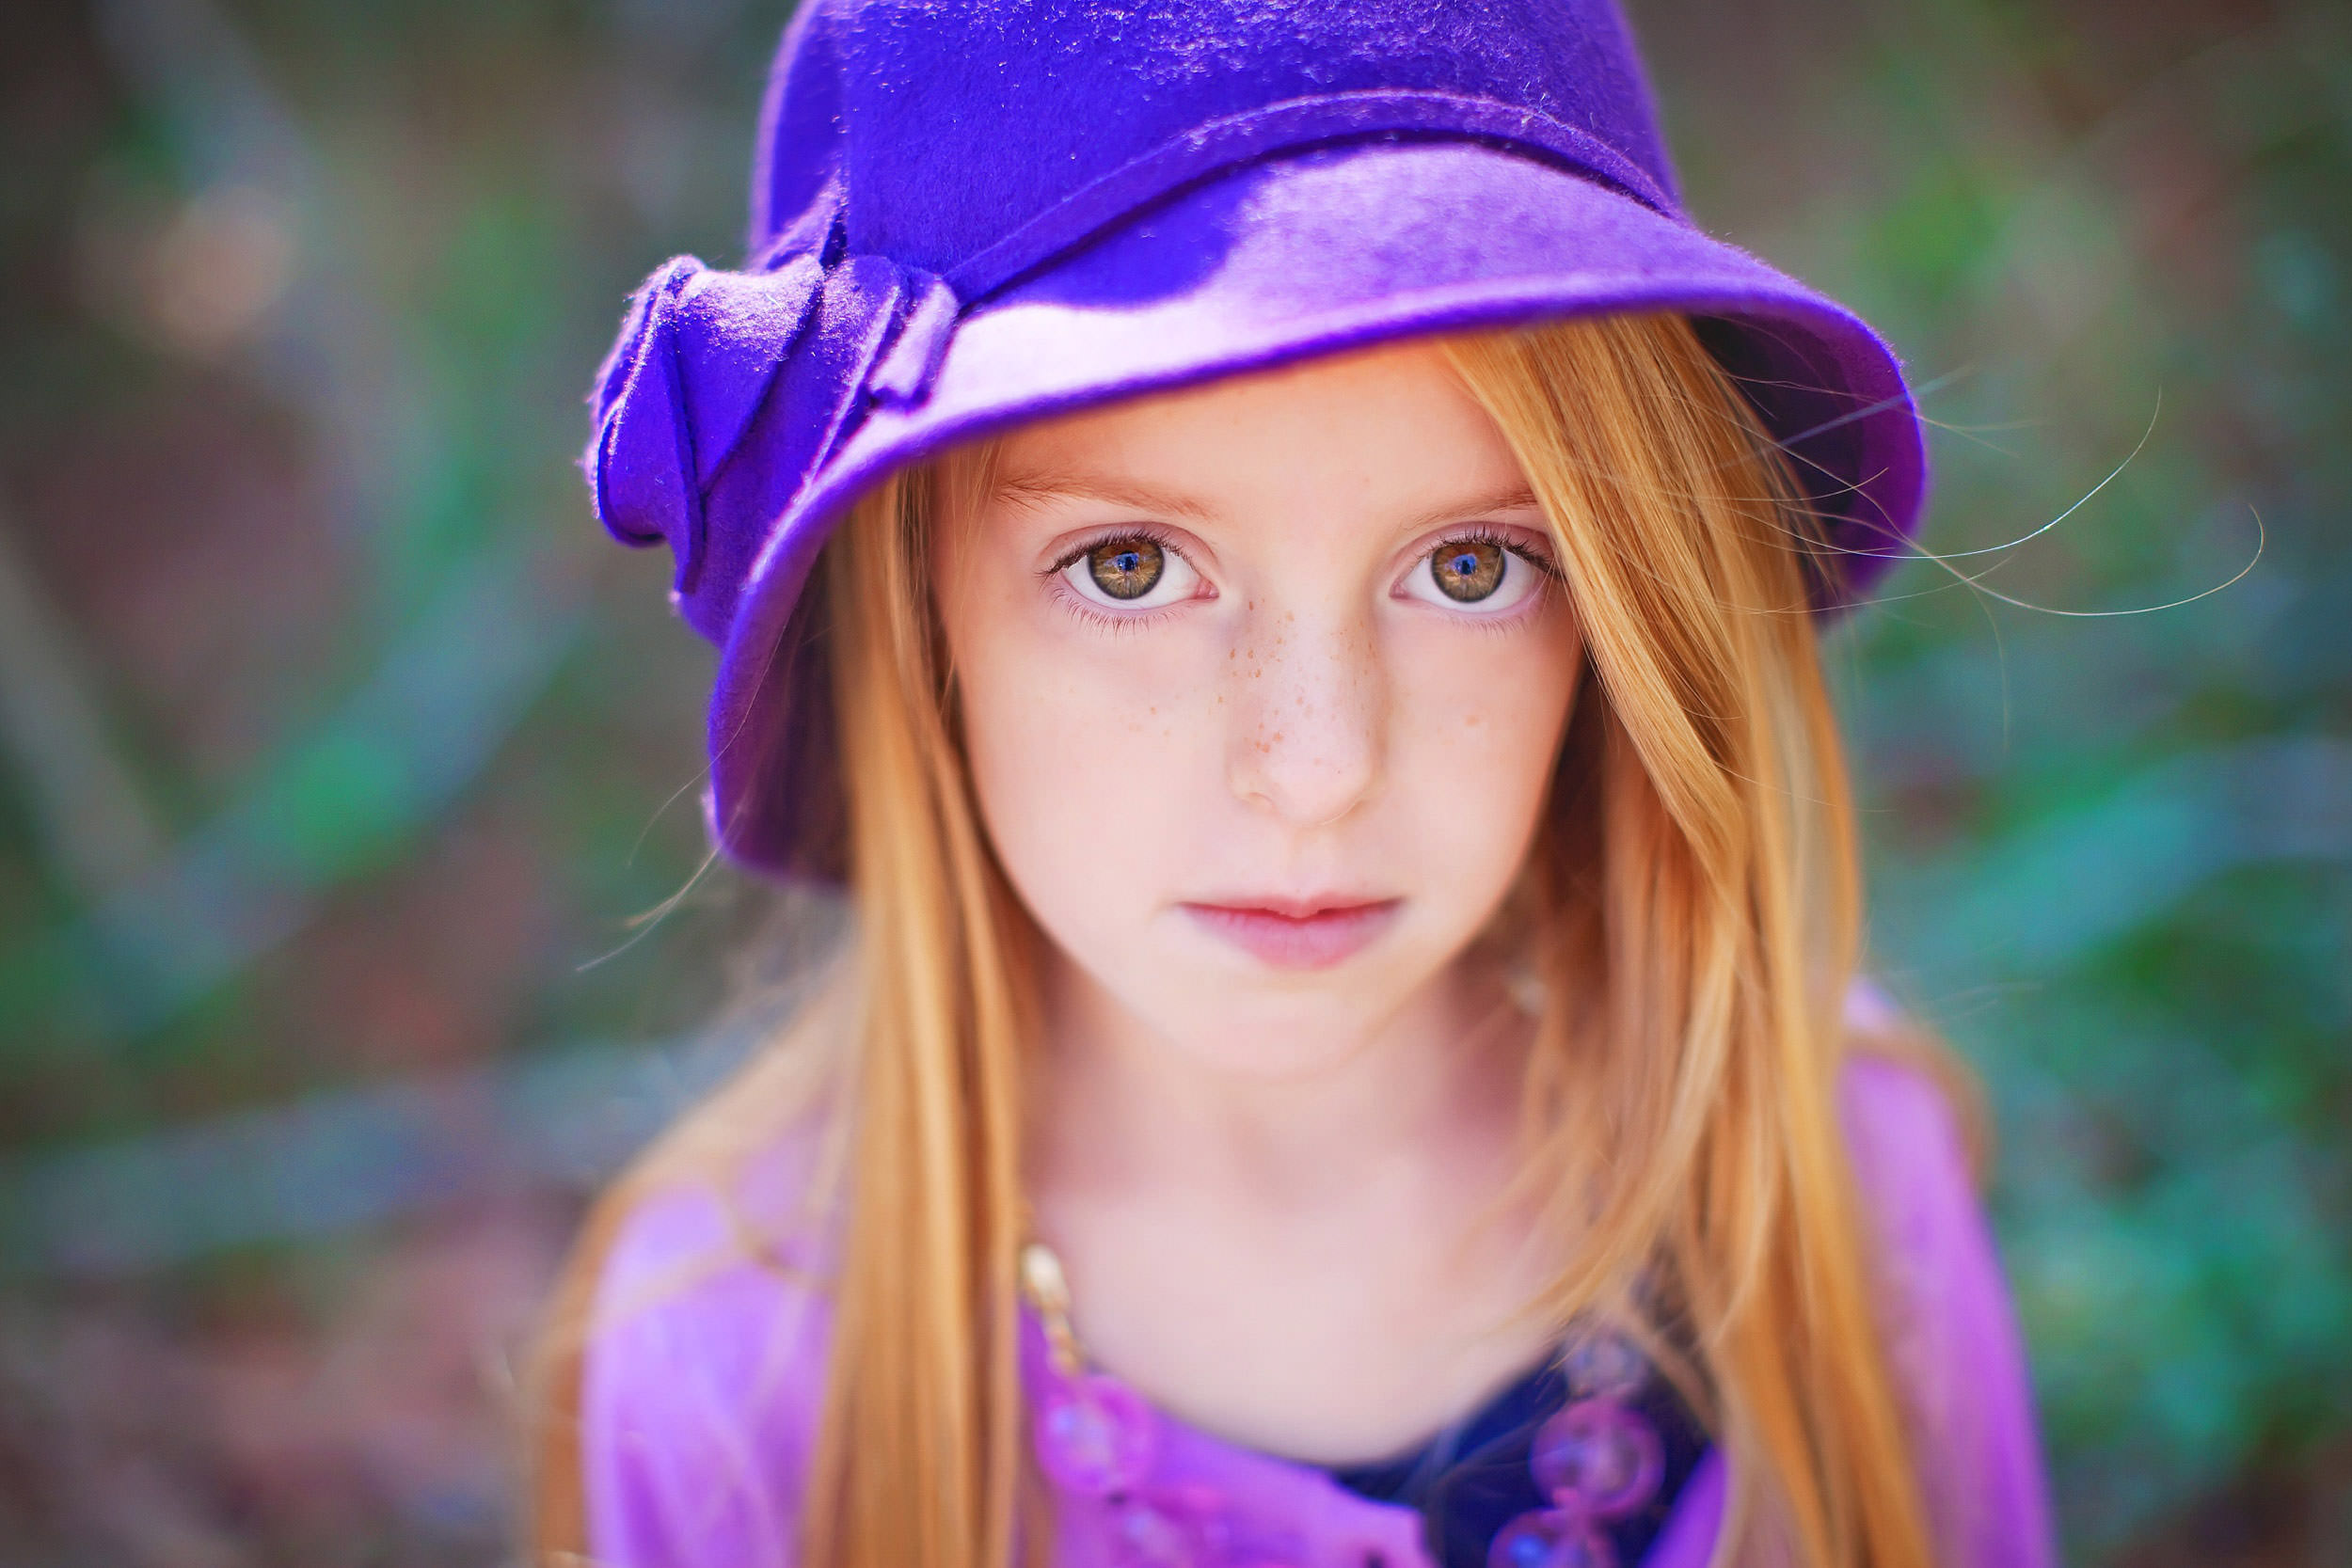 Beautiful close up portait of young girl by Houston Family Photographer spryART photography